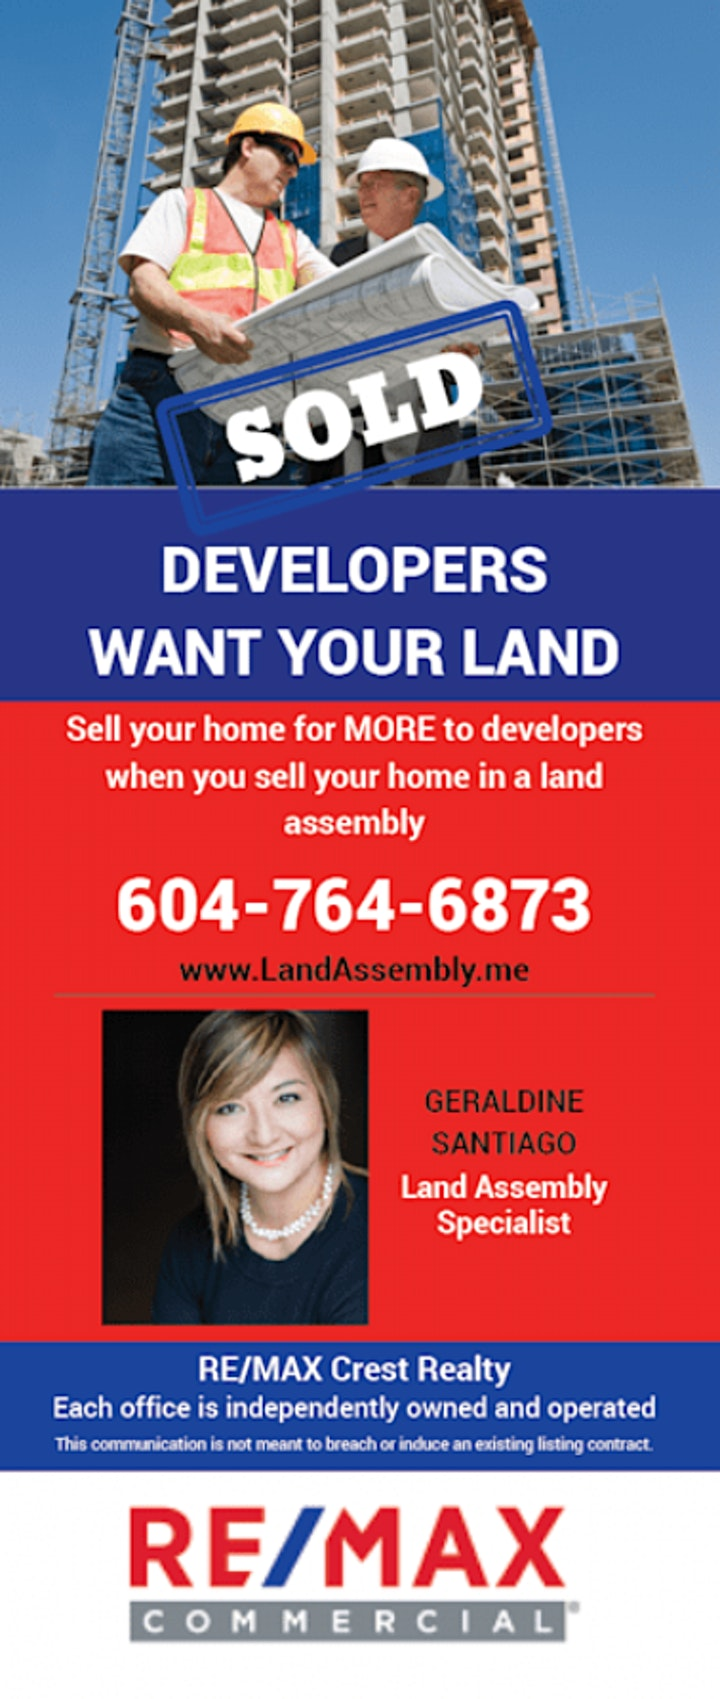 6TH ANNUAL LAND ASSEMBLY SEMINAR image